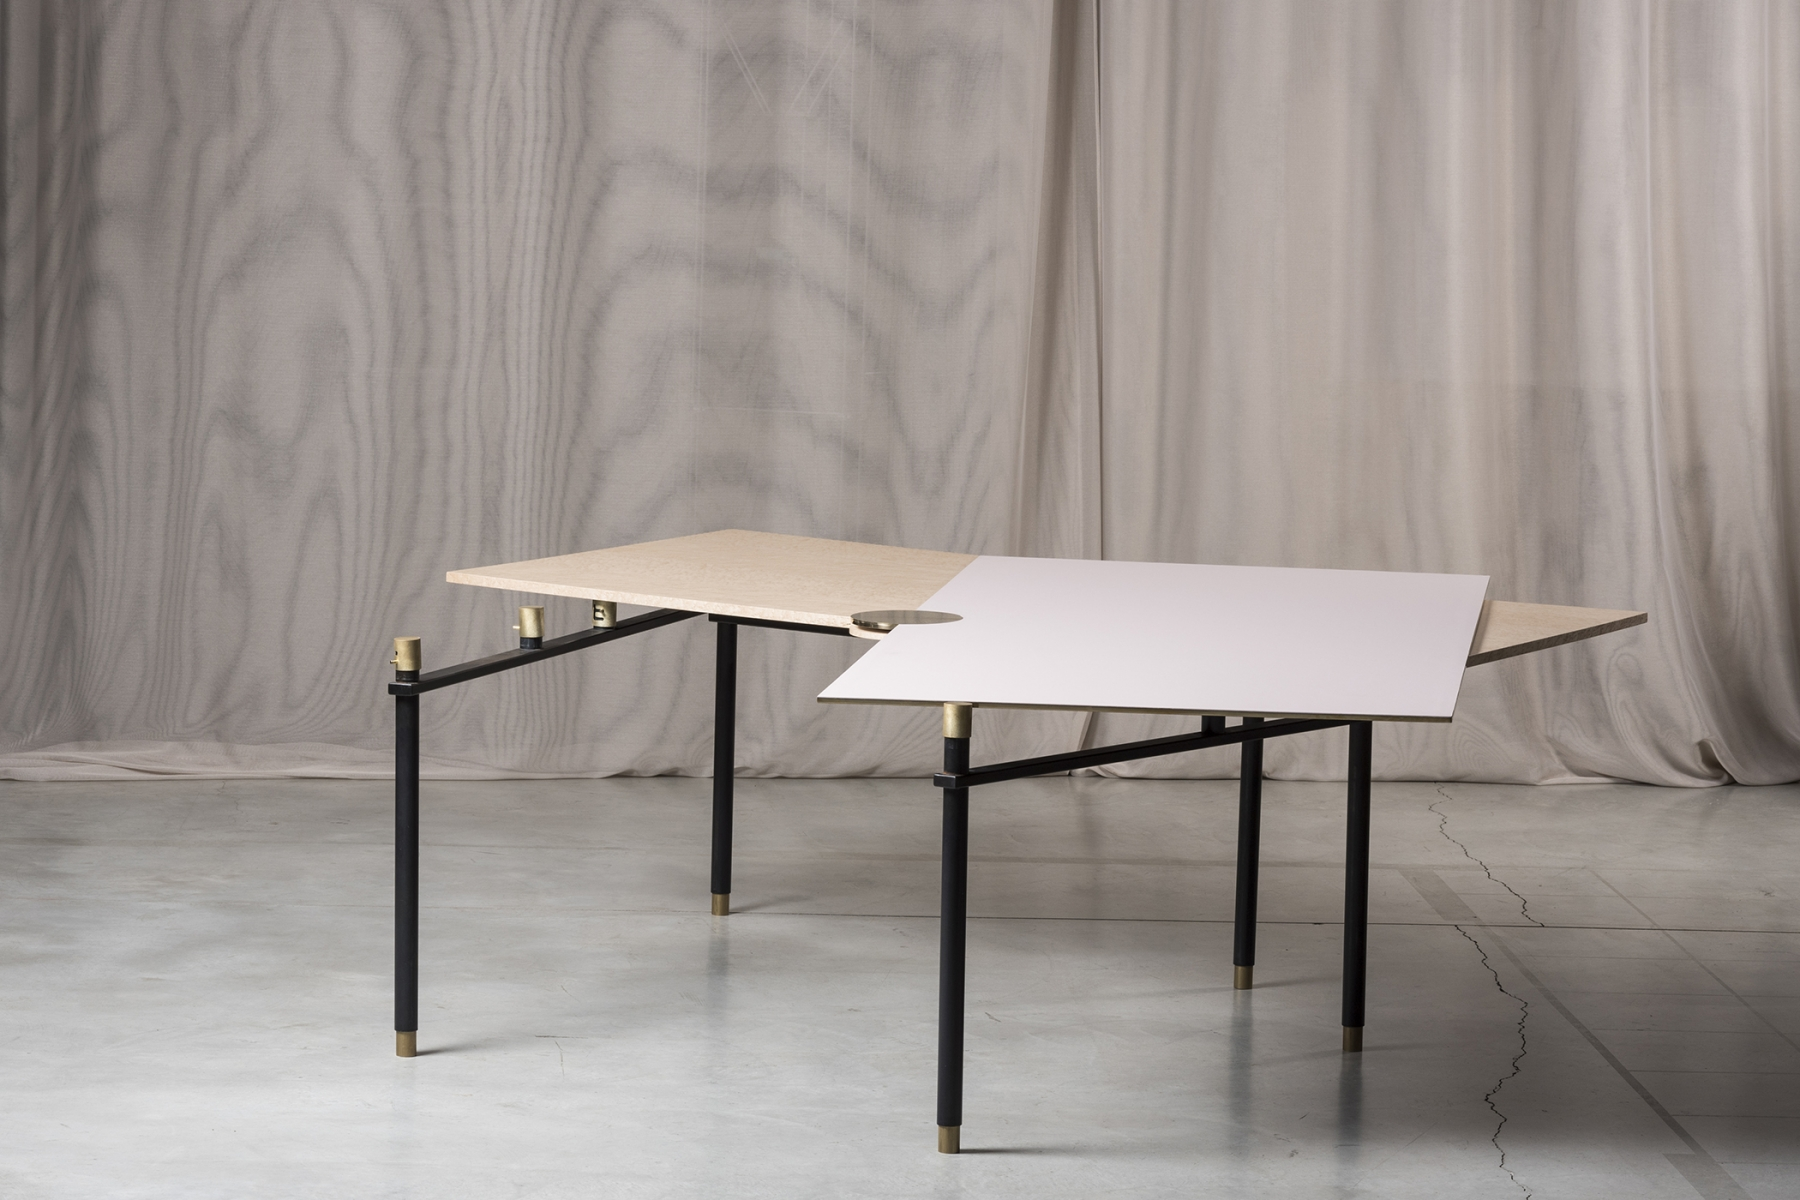 Extendable dining table Massimiliano Locatelli pic-6